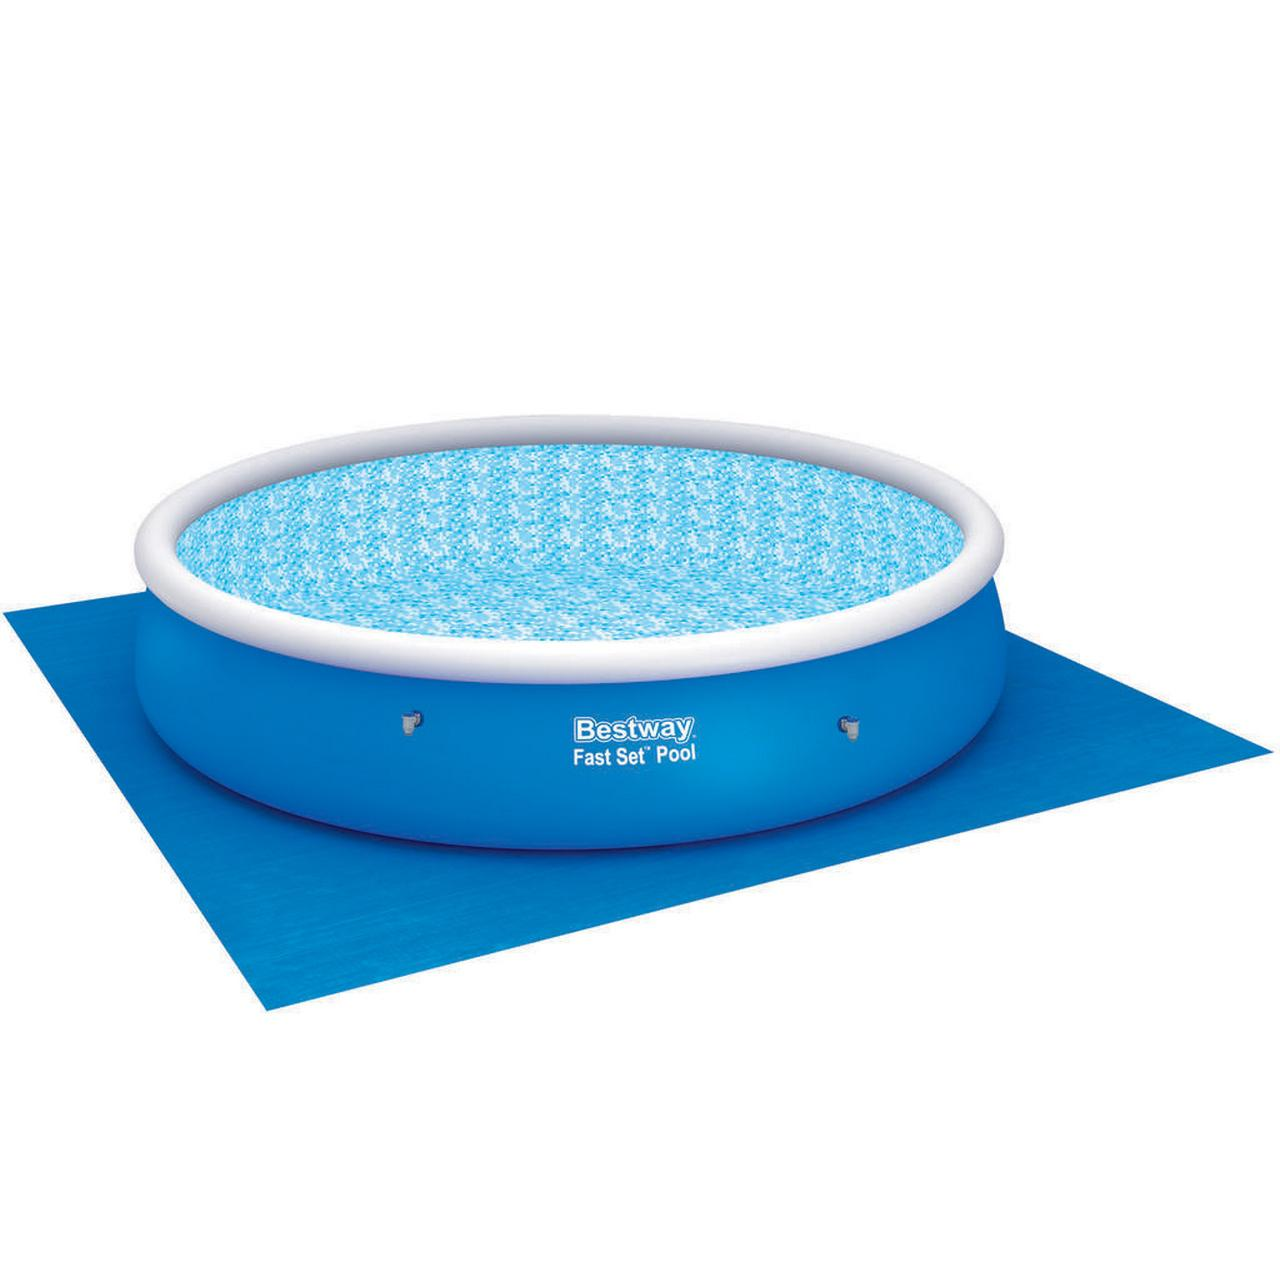 Tapis de sol protection piscine bestway tapis de sol for Protection piscine